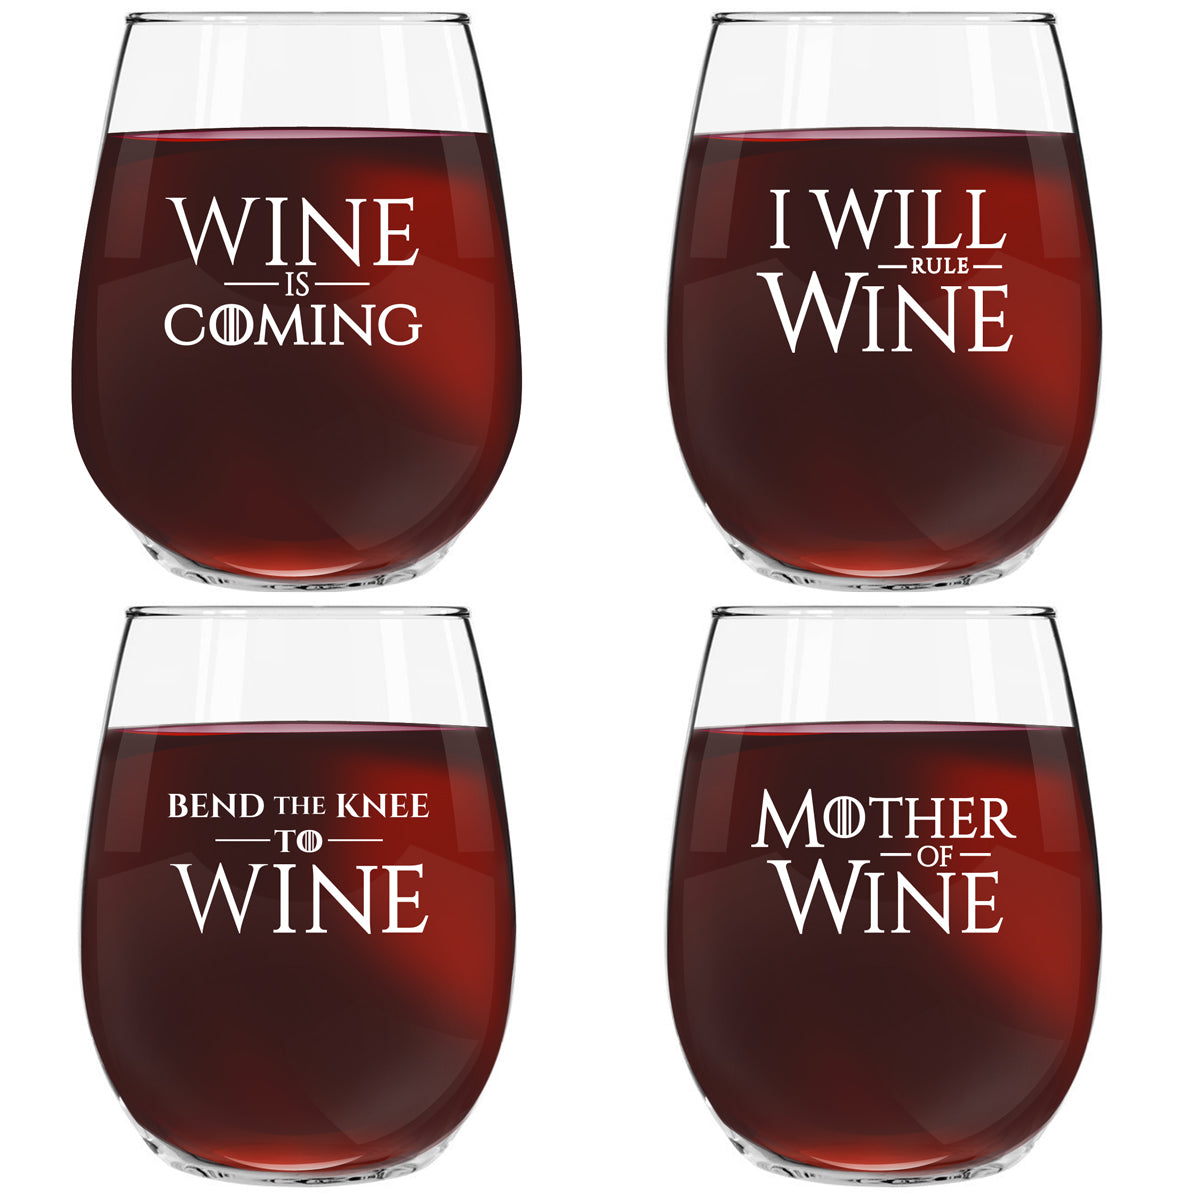 Game of Thrones Inspired Wine Quotes | Set of 4 Stemless Wine Glasses with 4 Unique GOT Themed Messages | Cute 15 oz. Wine Lovers Gift for Women | Dishwasher Safe | Made in USA